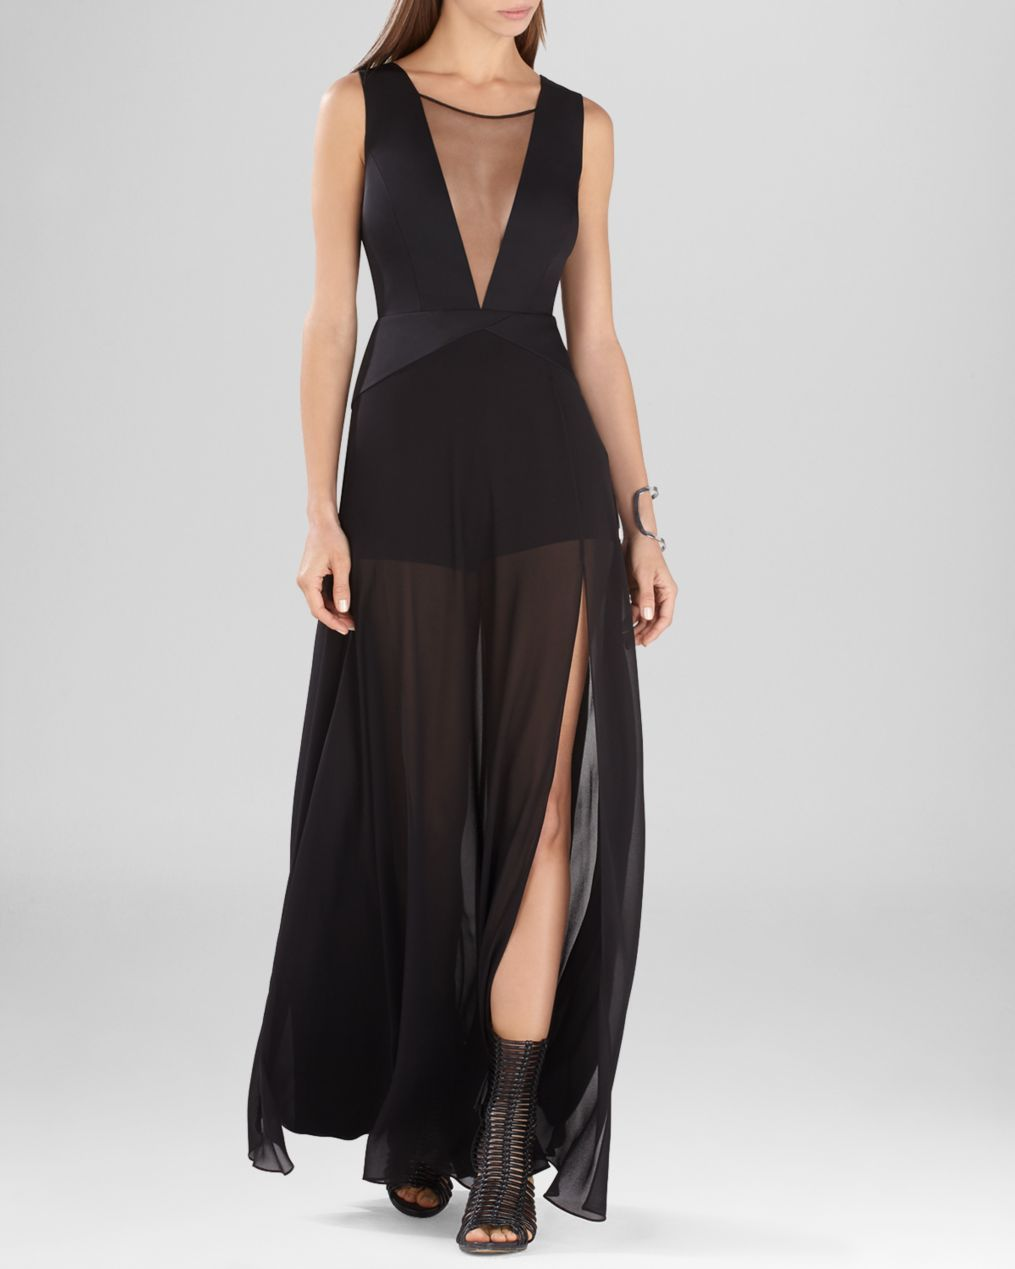 My ge gala gown jan style pinterest gala gowns gowns and